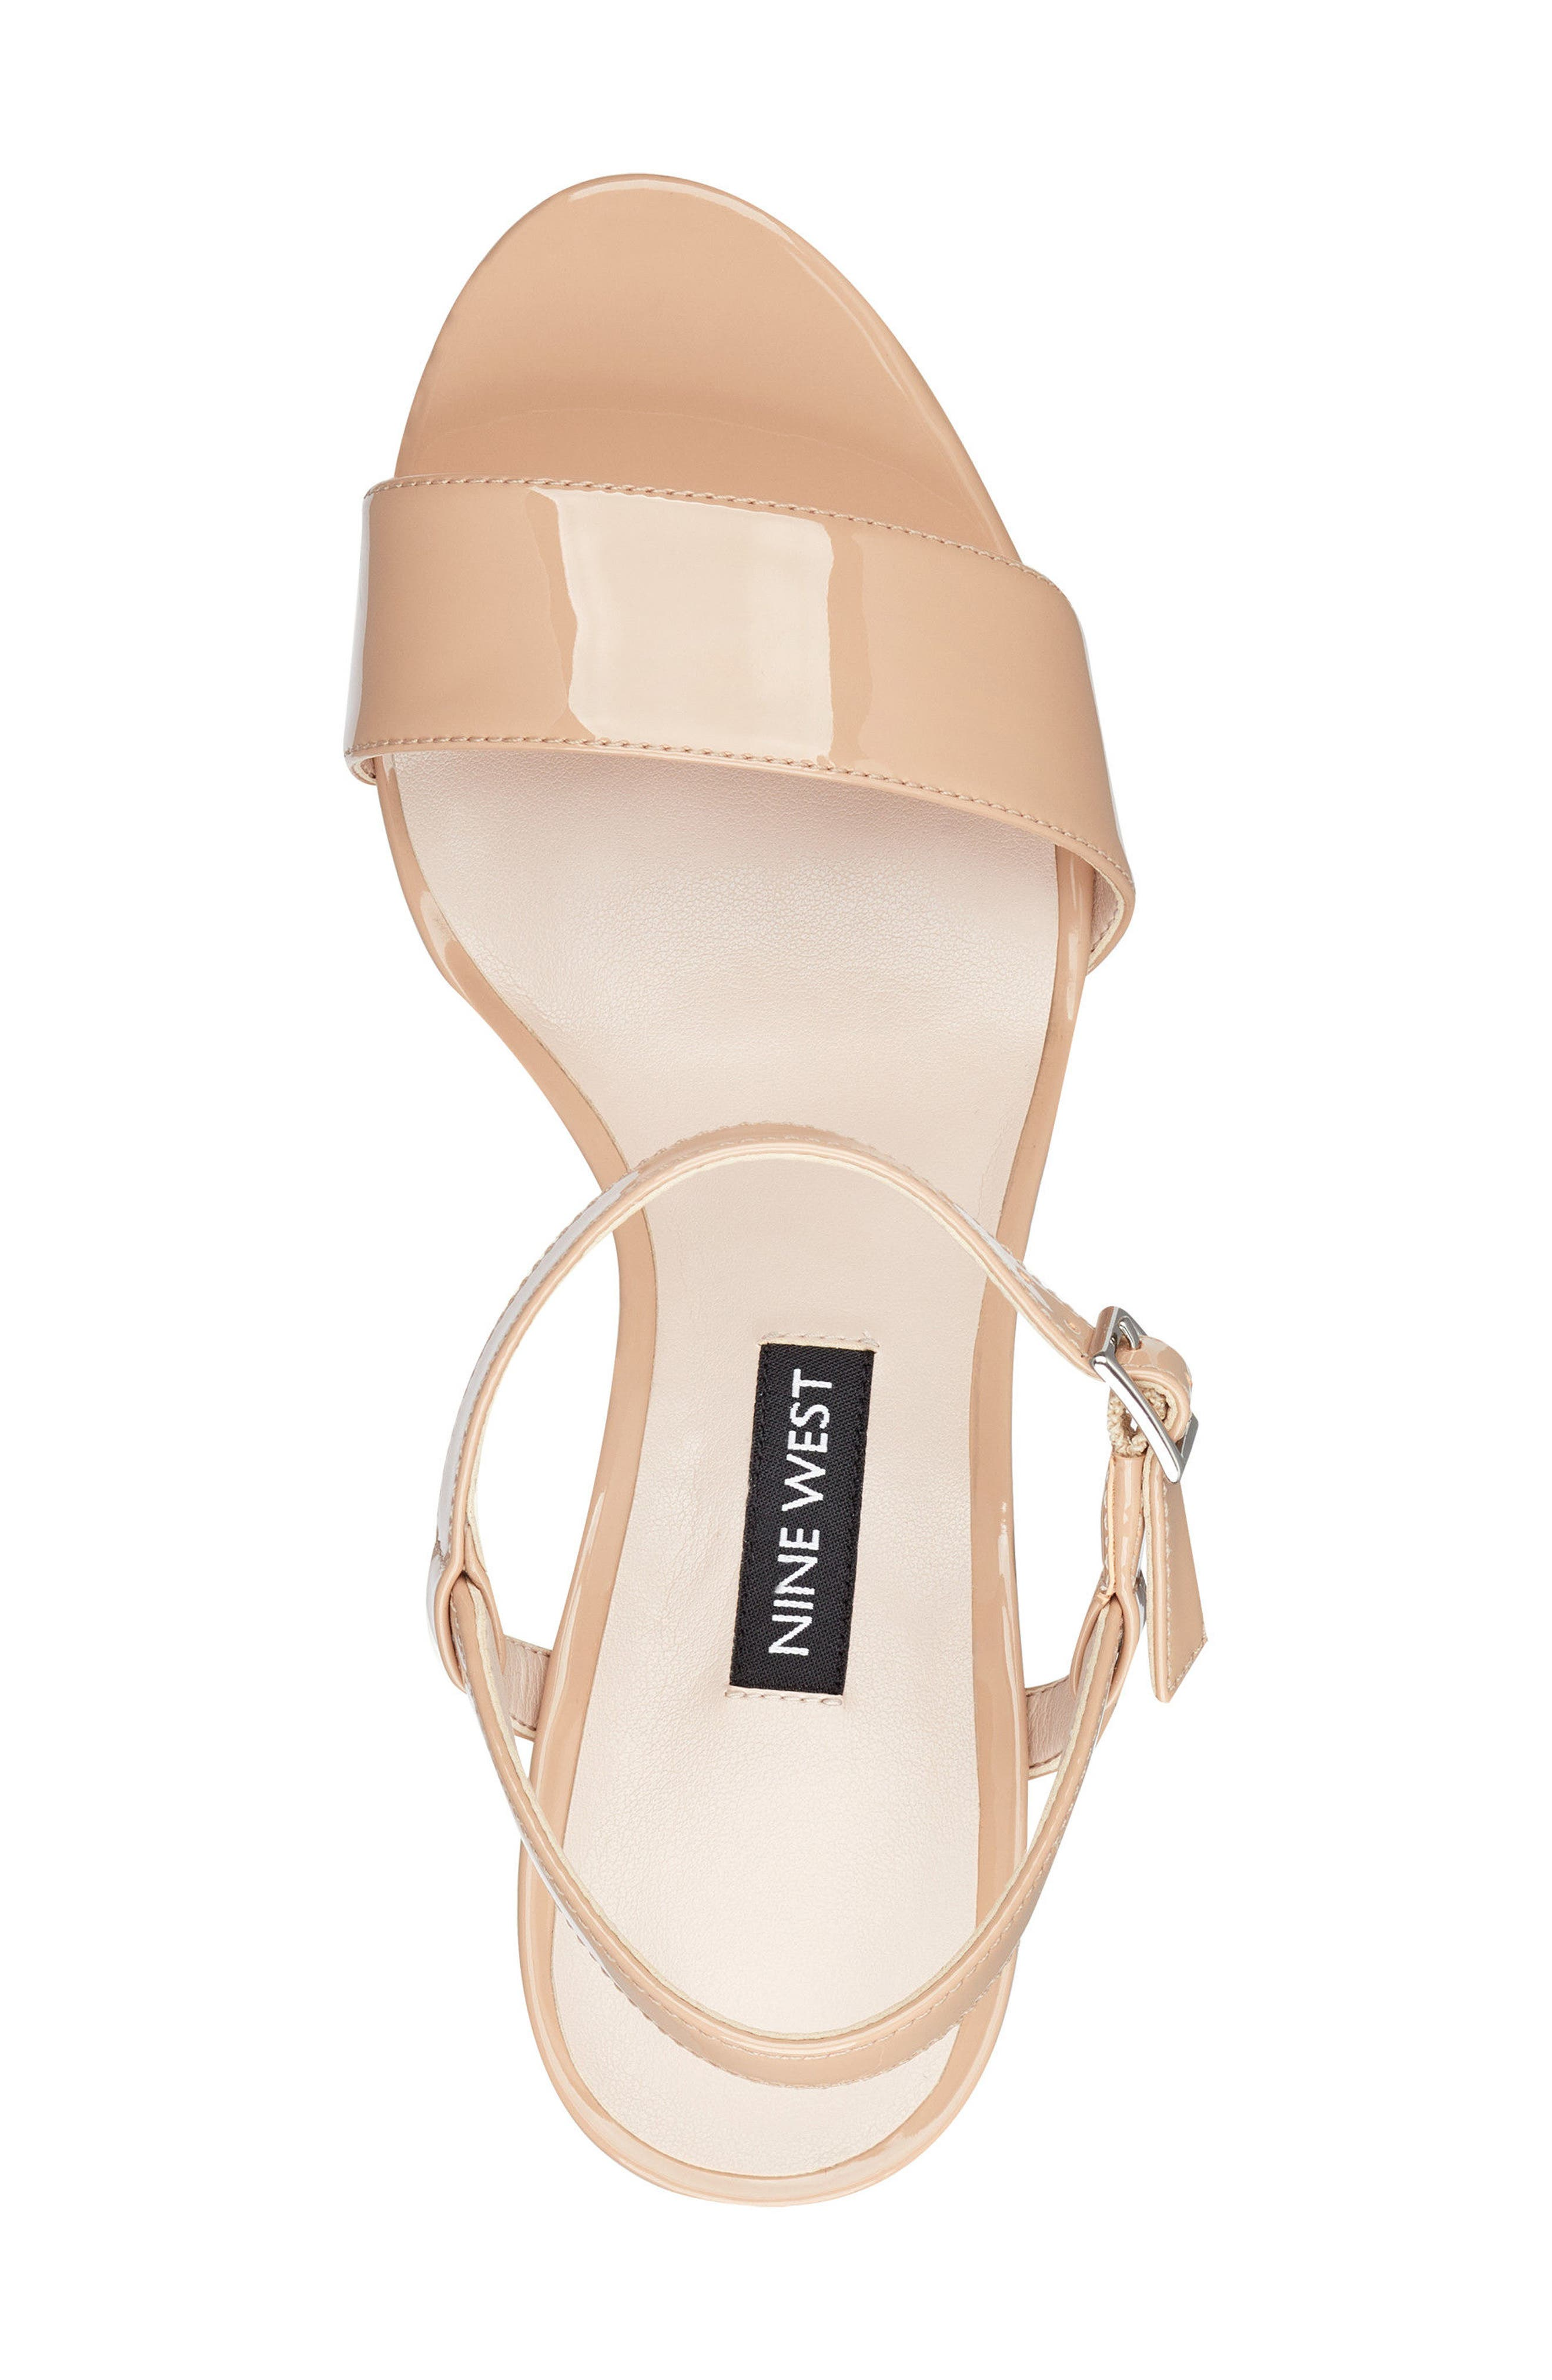 Feisty Ankle Strap Sandal,                             Alternate thumbnail 5, color,                             Nude Suede